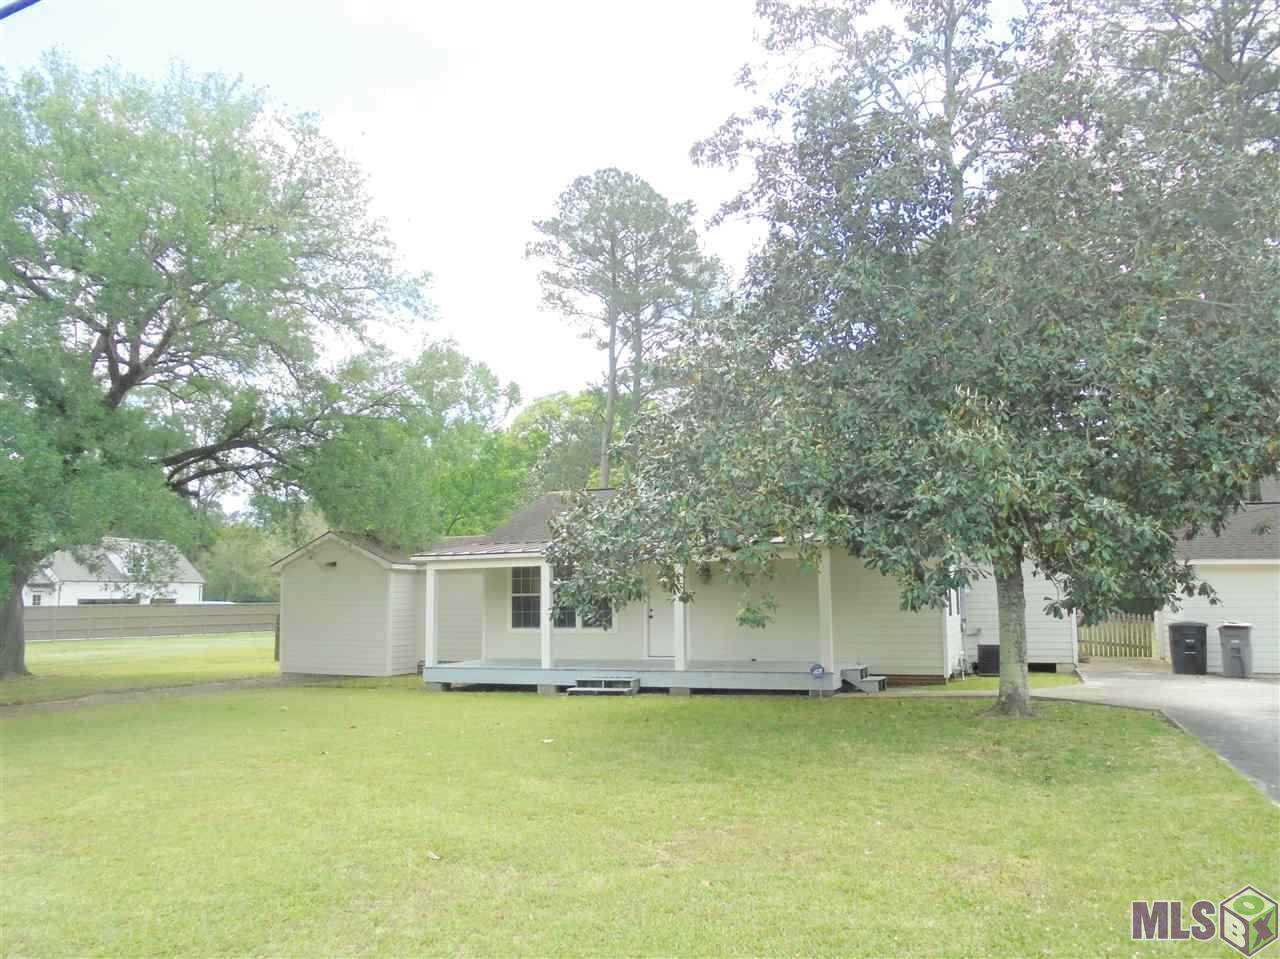 8860 Hill Dr - Photo 1